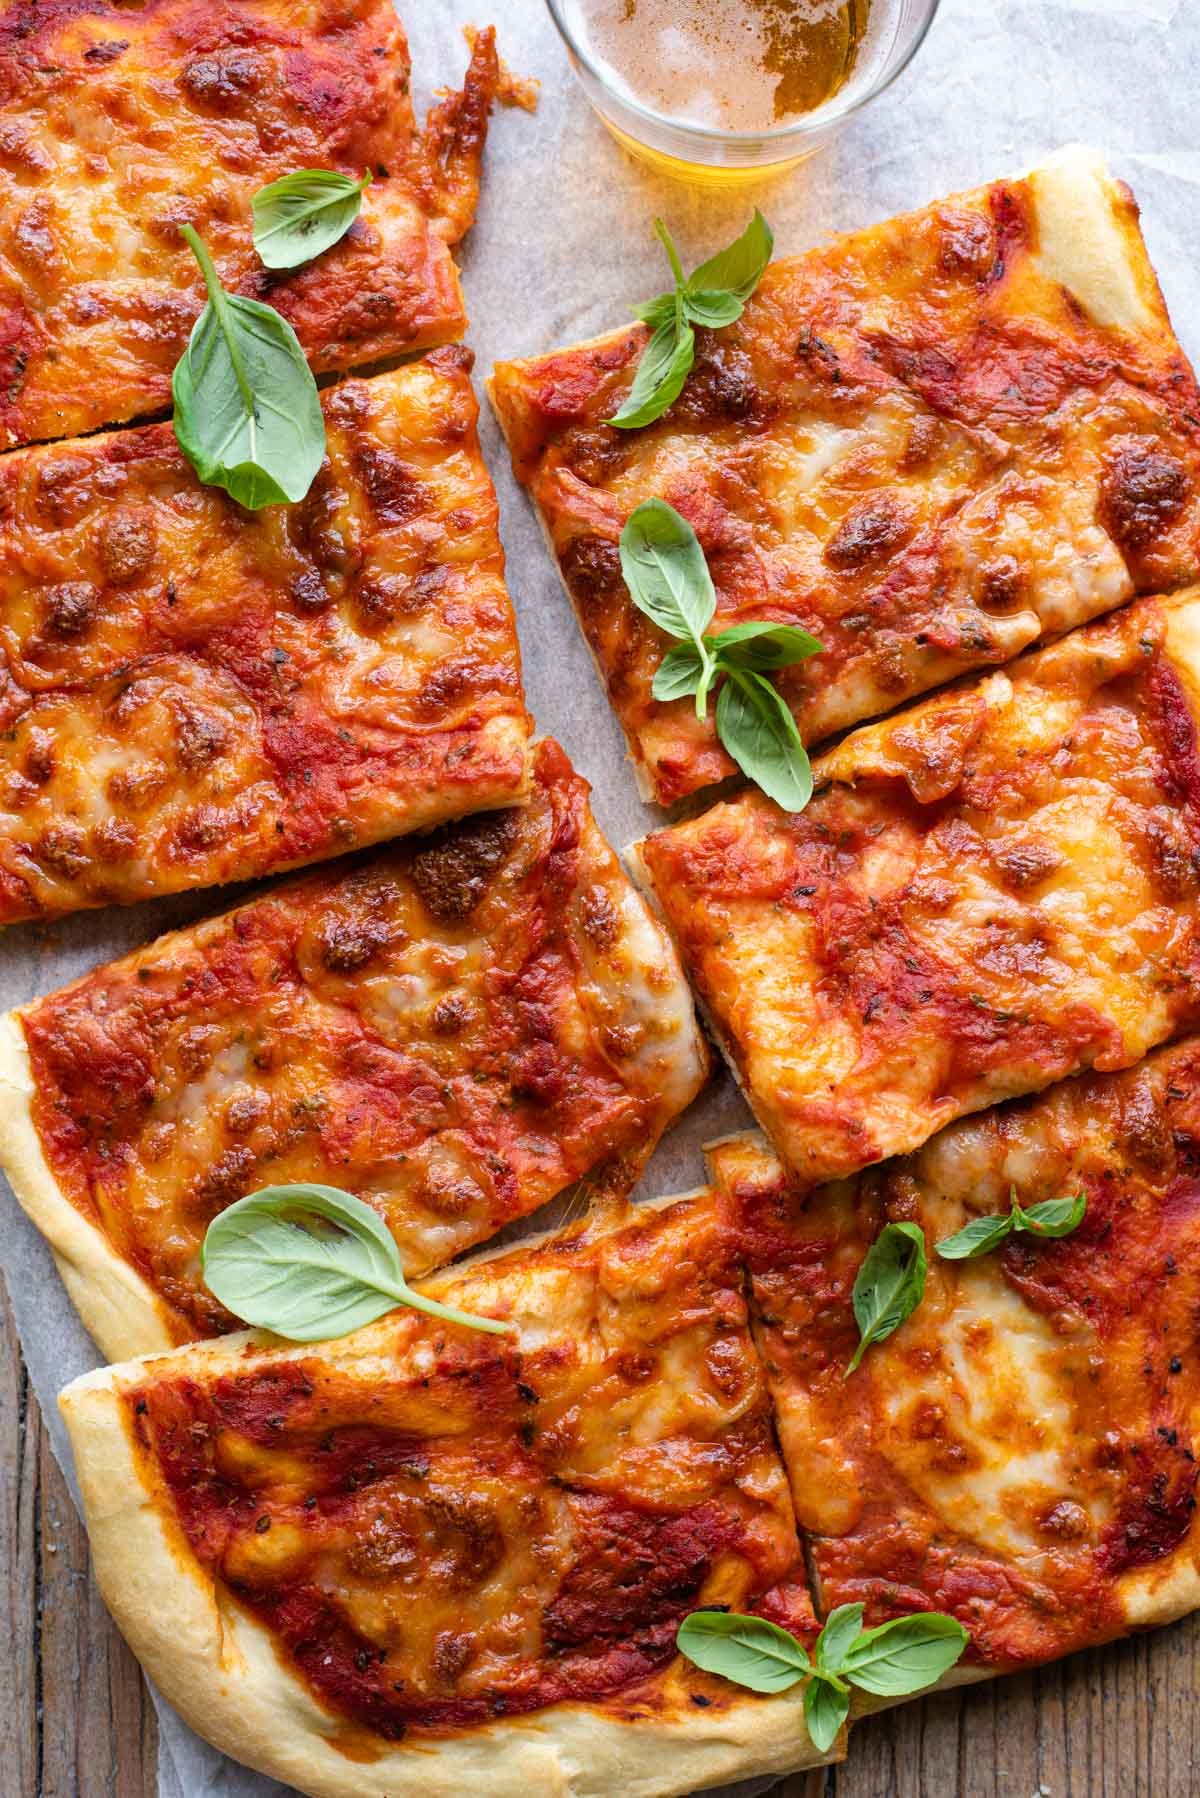 An overgead shot of a focaccia pizza cut into slices